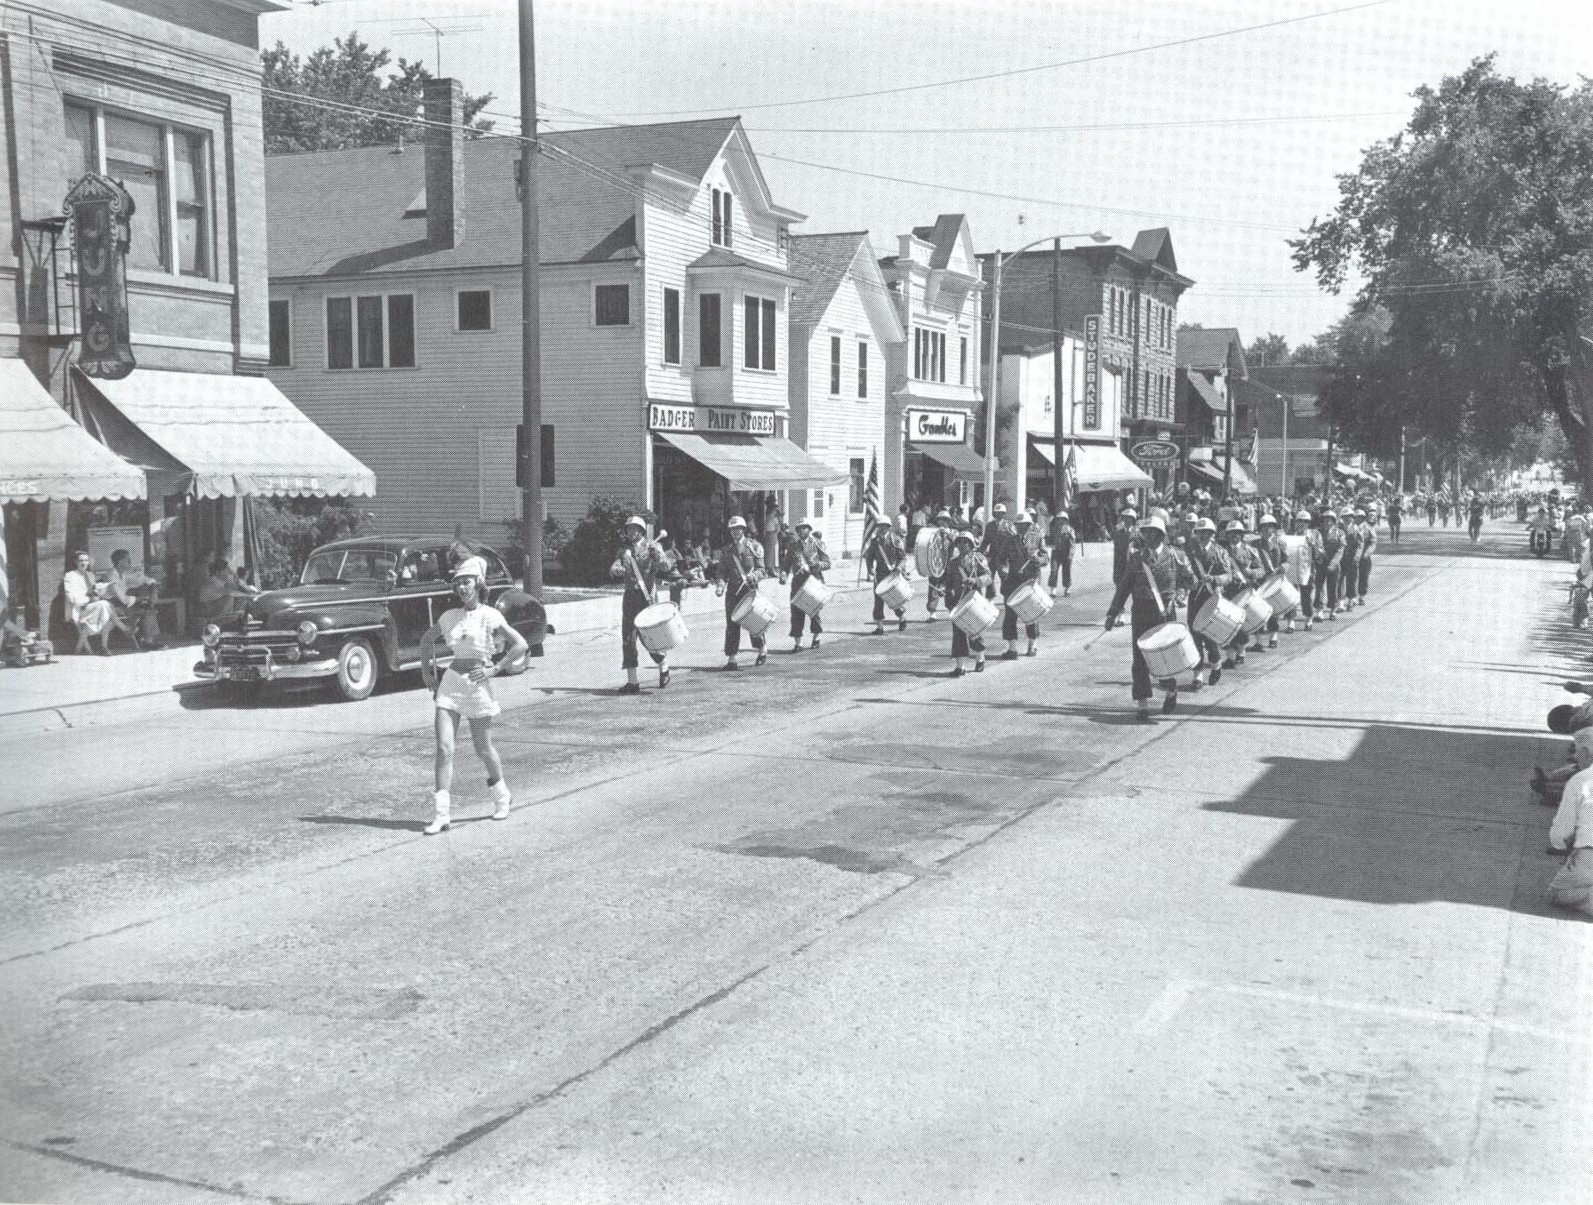 Old photo of a parade marching downtown.